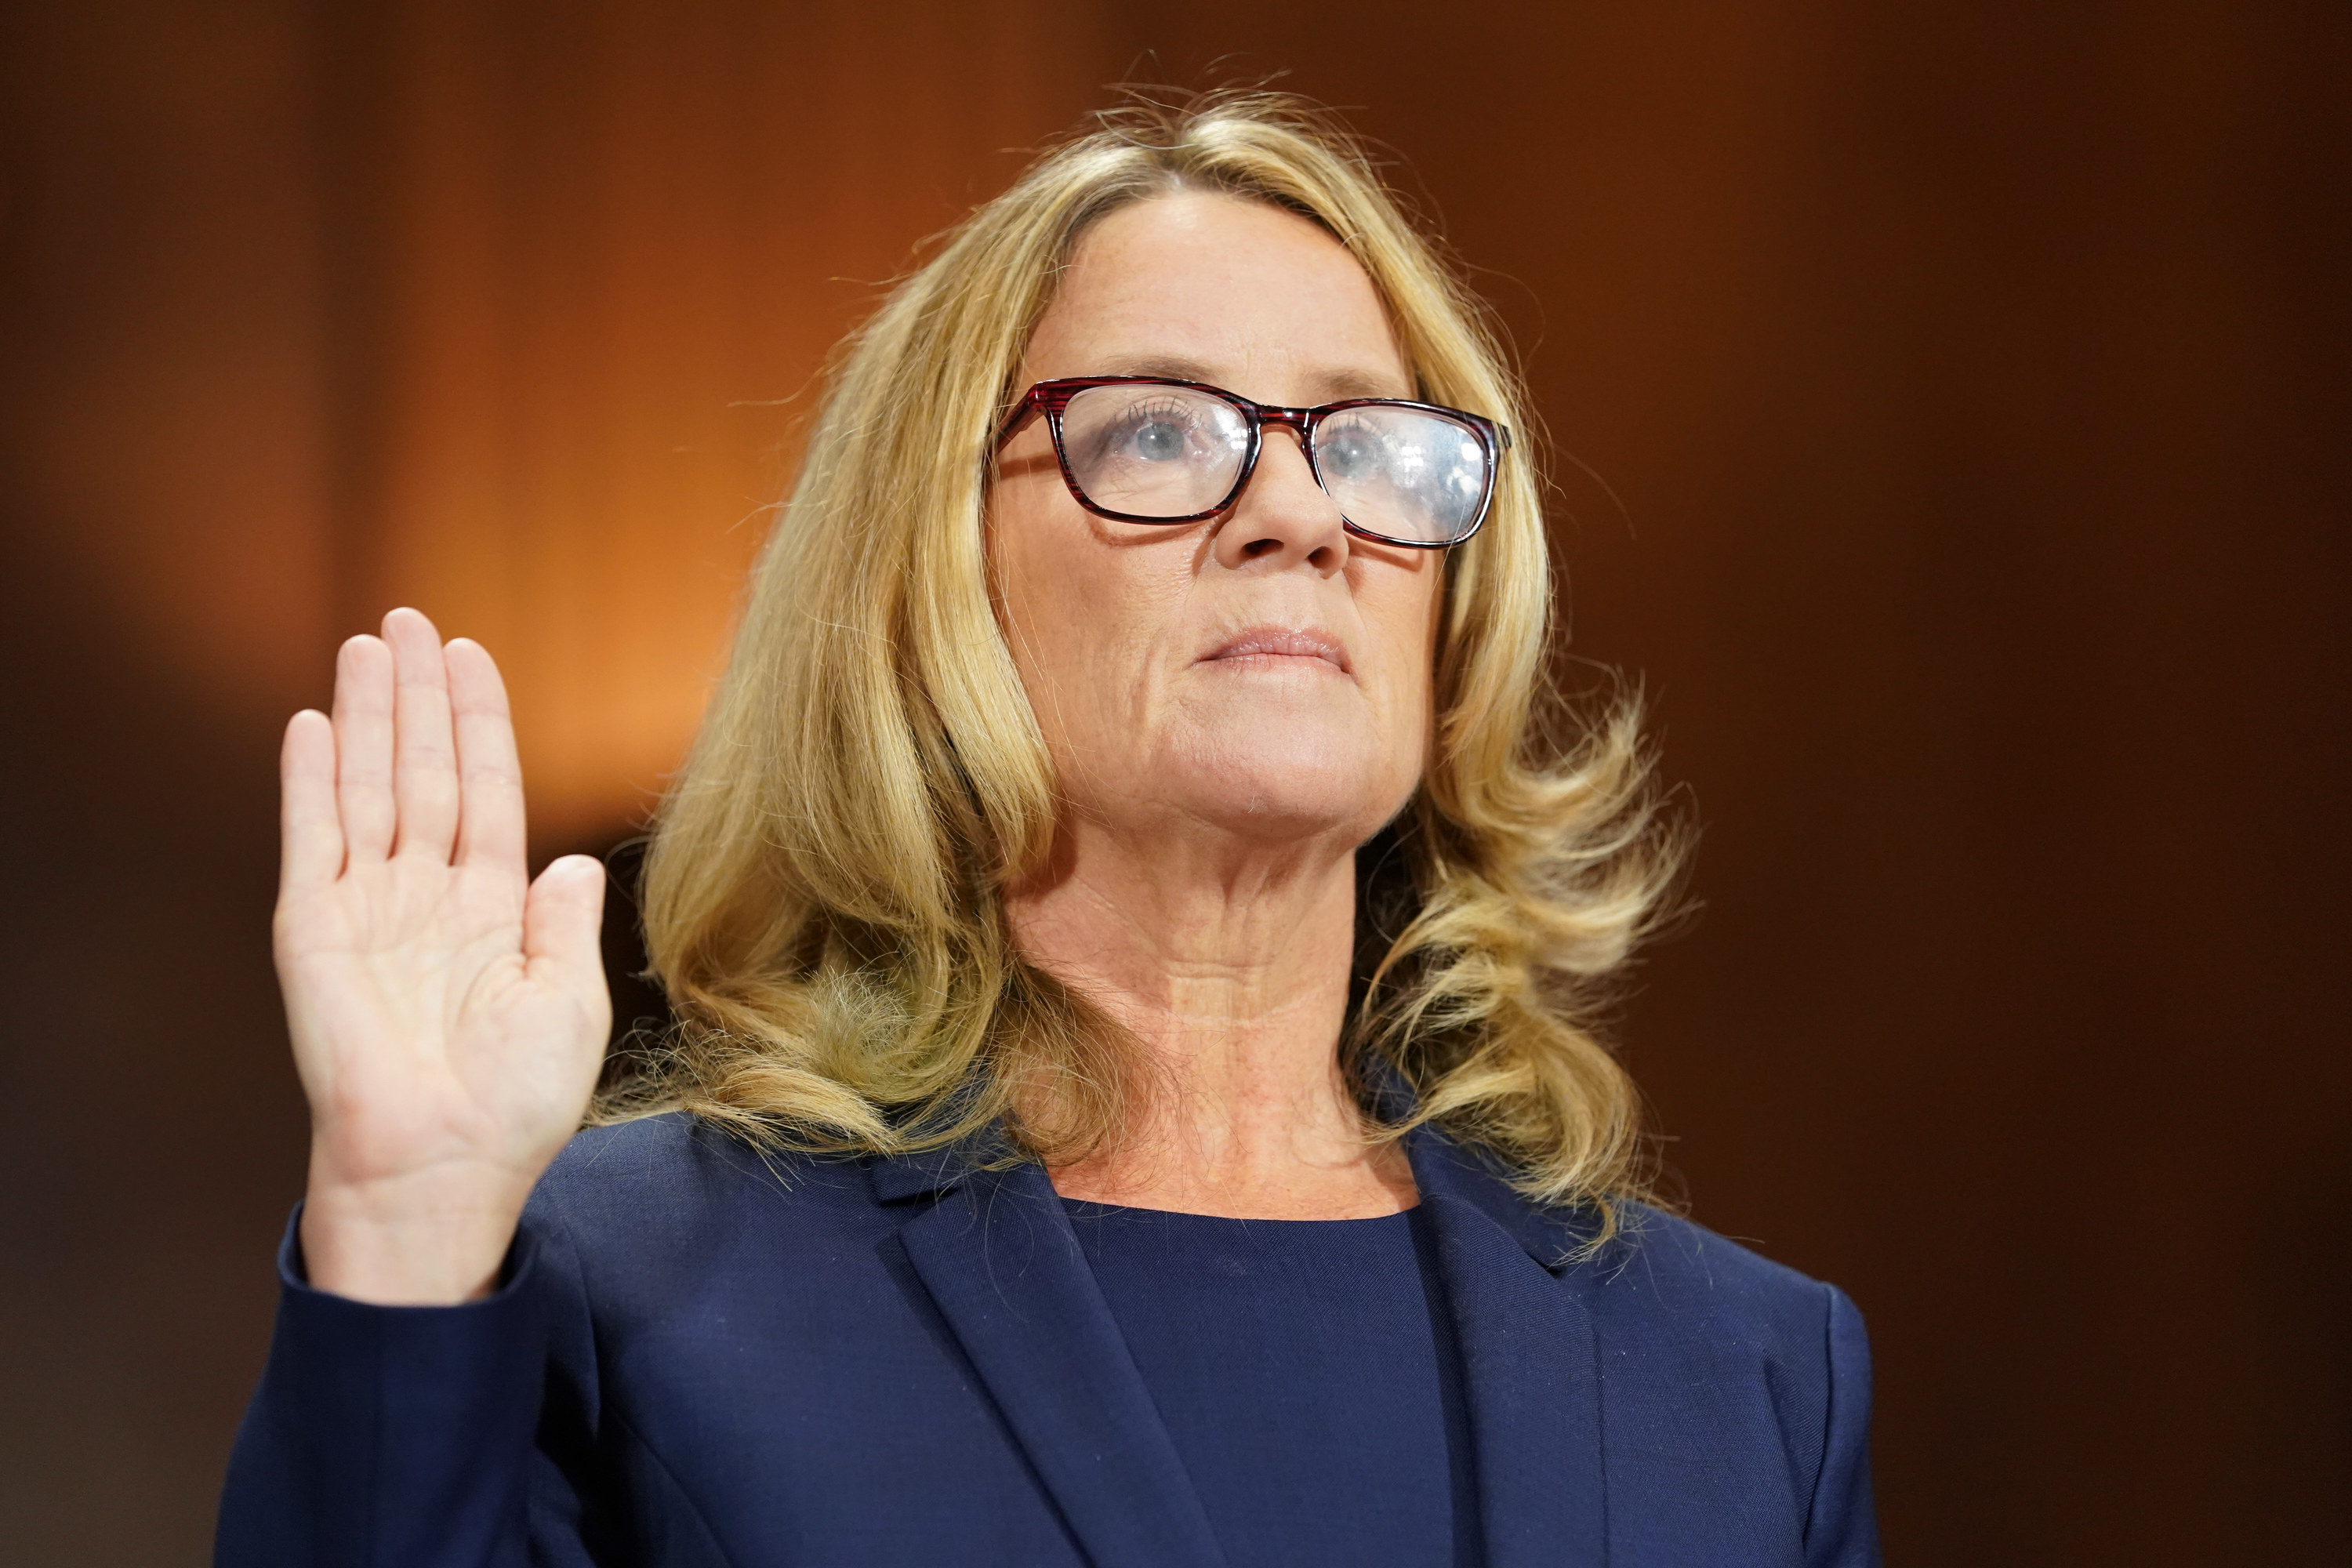 Christine Blasey Ford holding her right hand up to swear to tell the truth before testifying before Congress